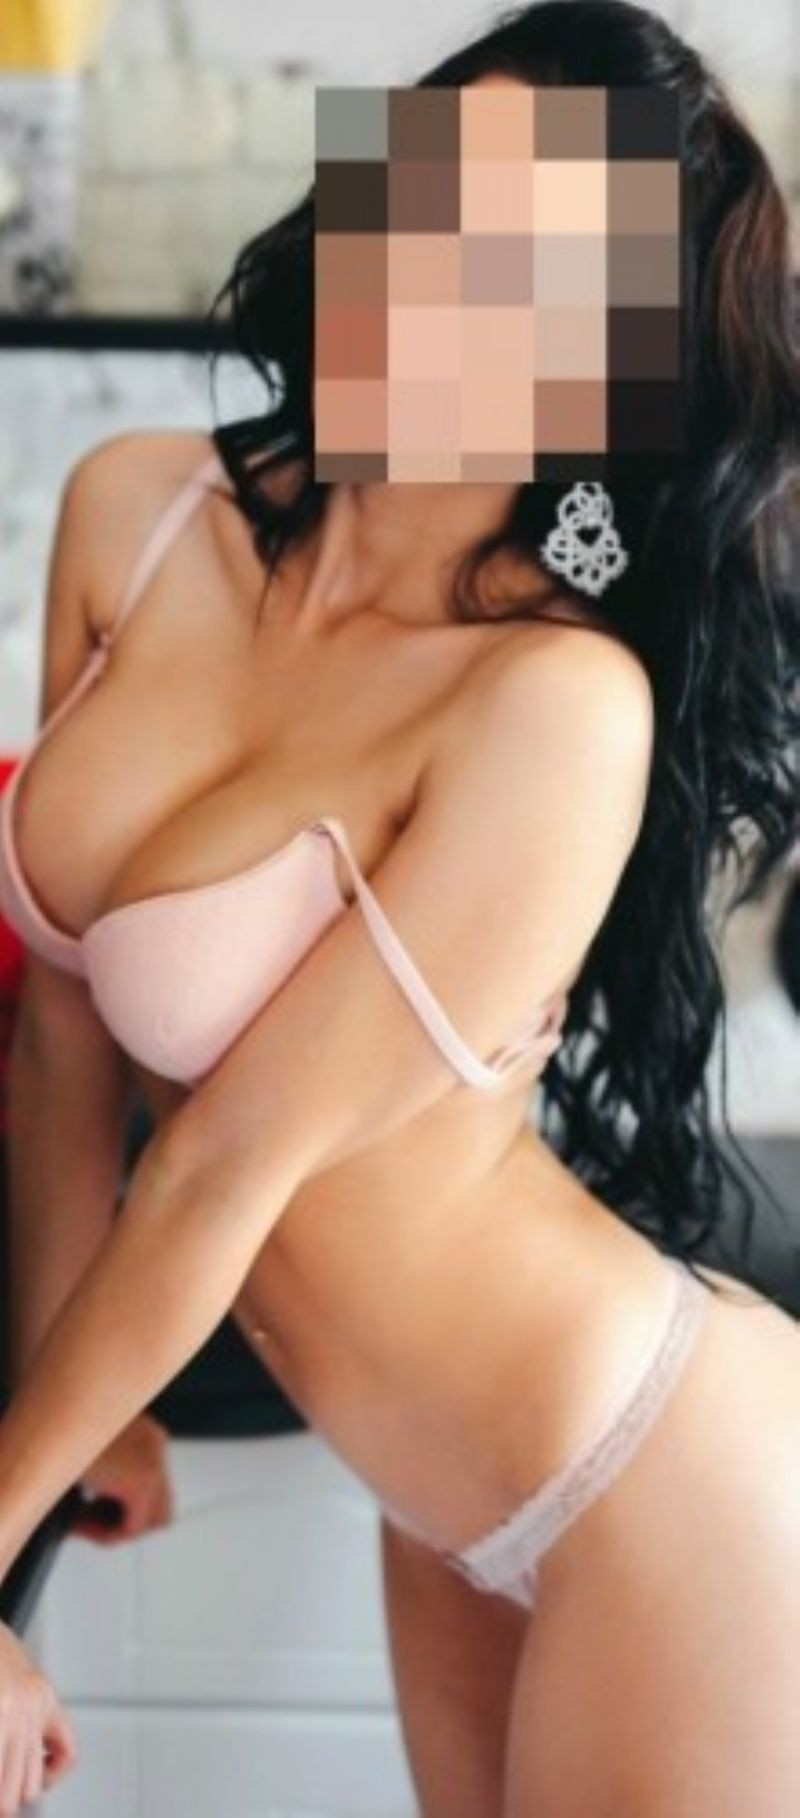 sex only dating cheap escort Melbourne